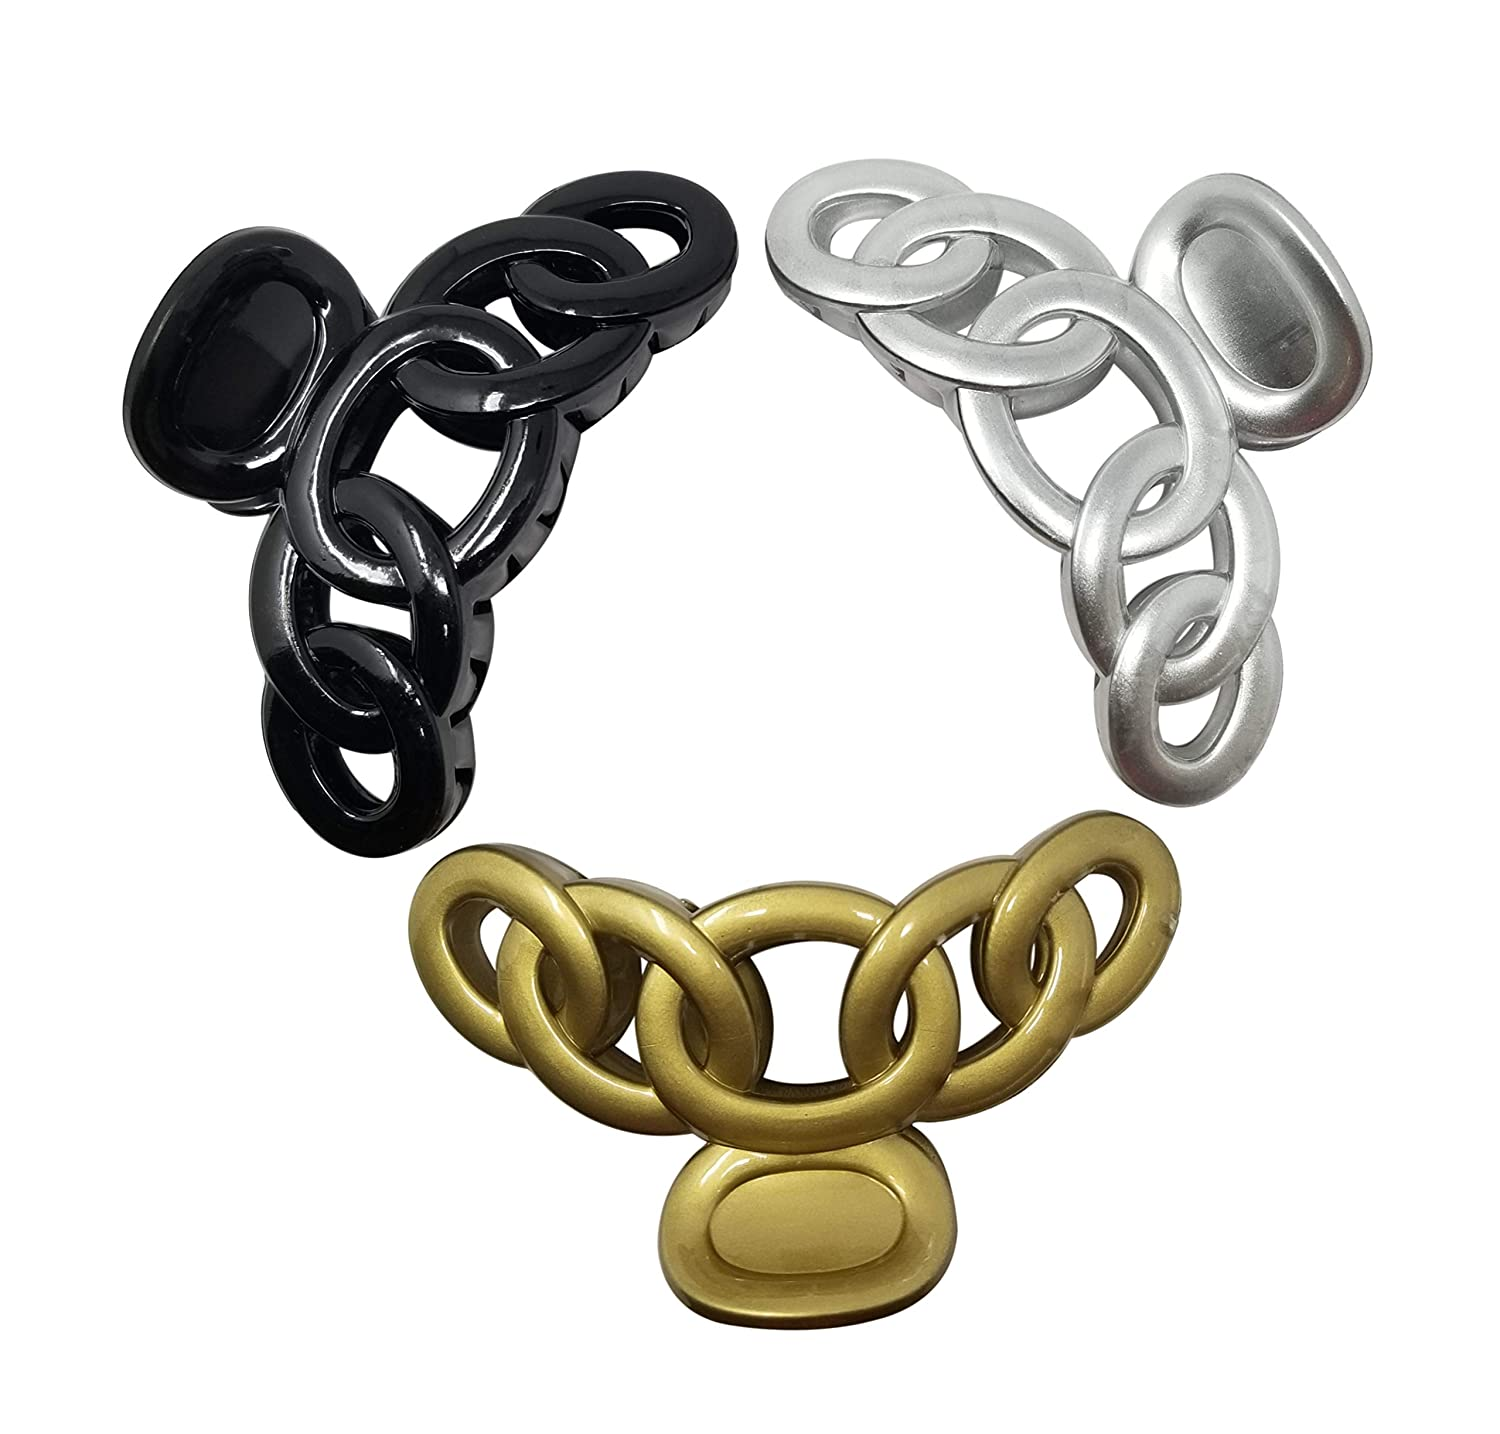 Evogirl Claw Clip Big Butterfly Rings Shape Cluther N Sip Grip Black, Silver, Golden, Xlarge, For Women/Girls Reasonable Brands